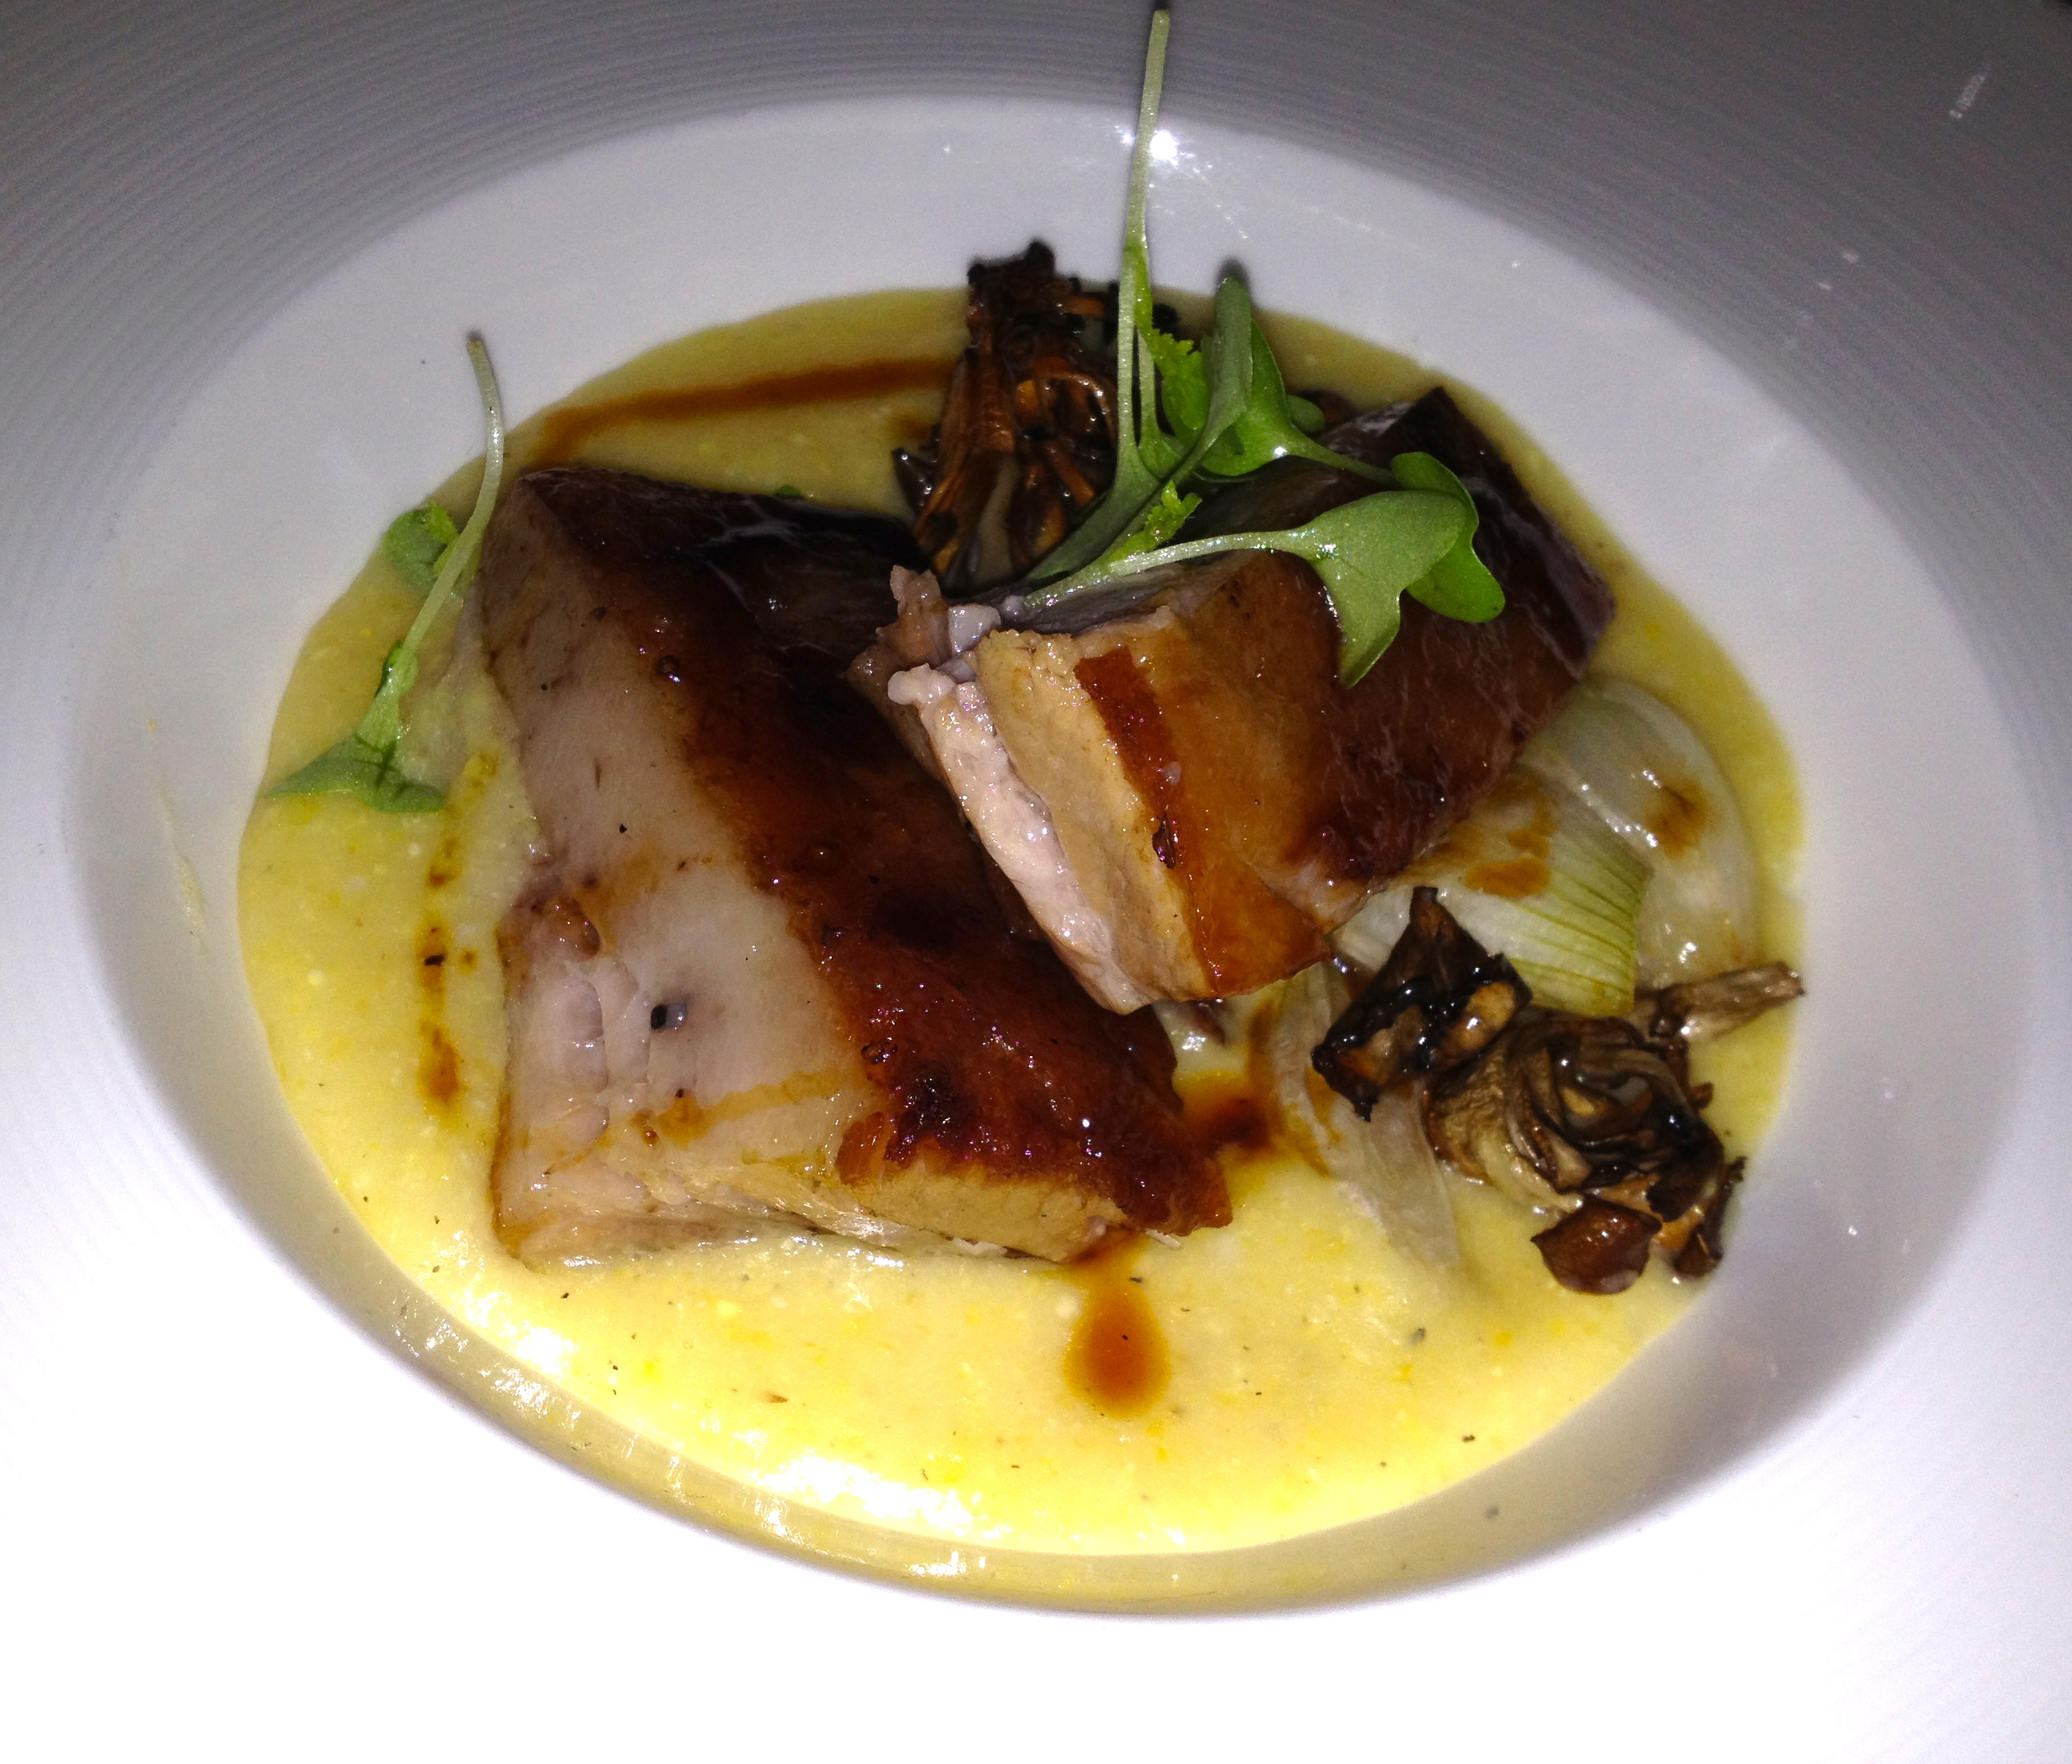 Food and Restaurant Reviews - Colicchio & Sons Tavern Room - Food ...